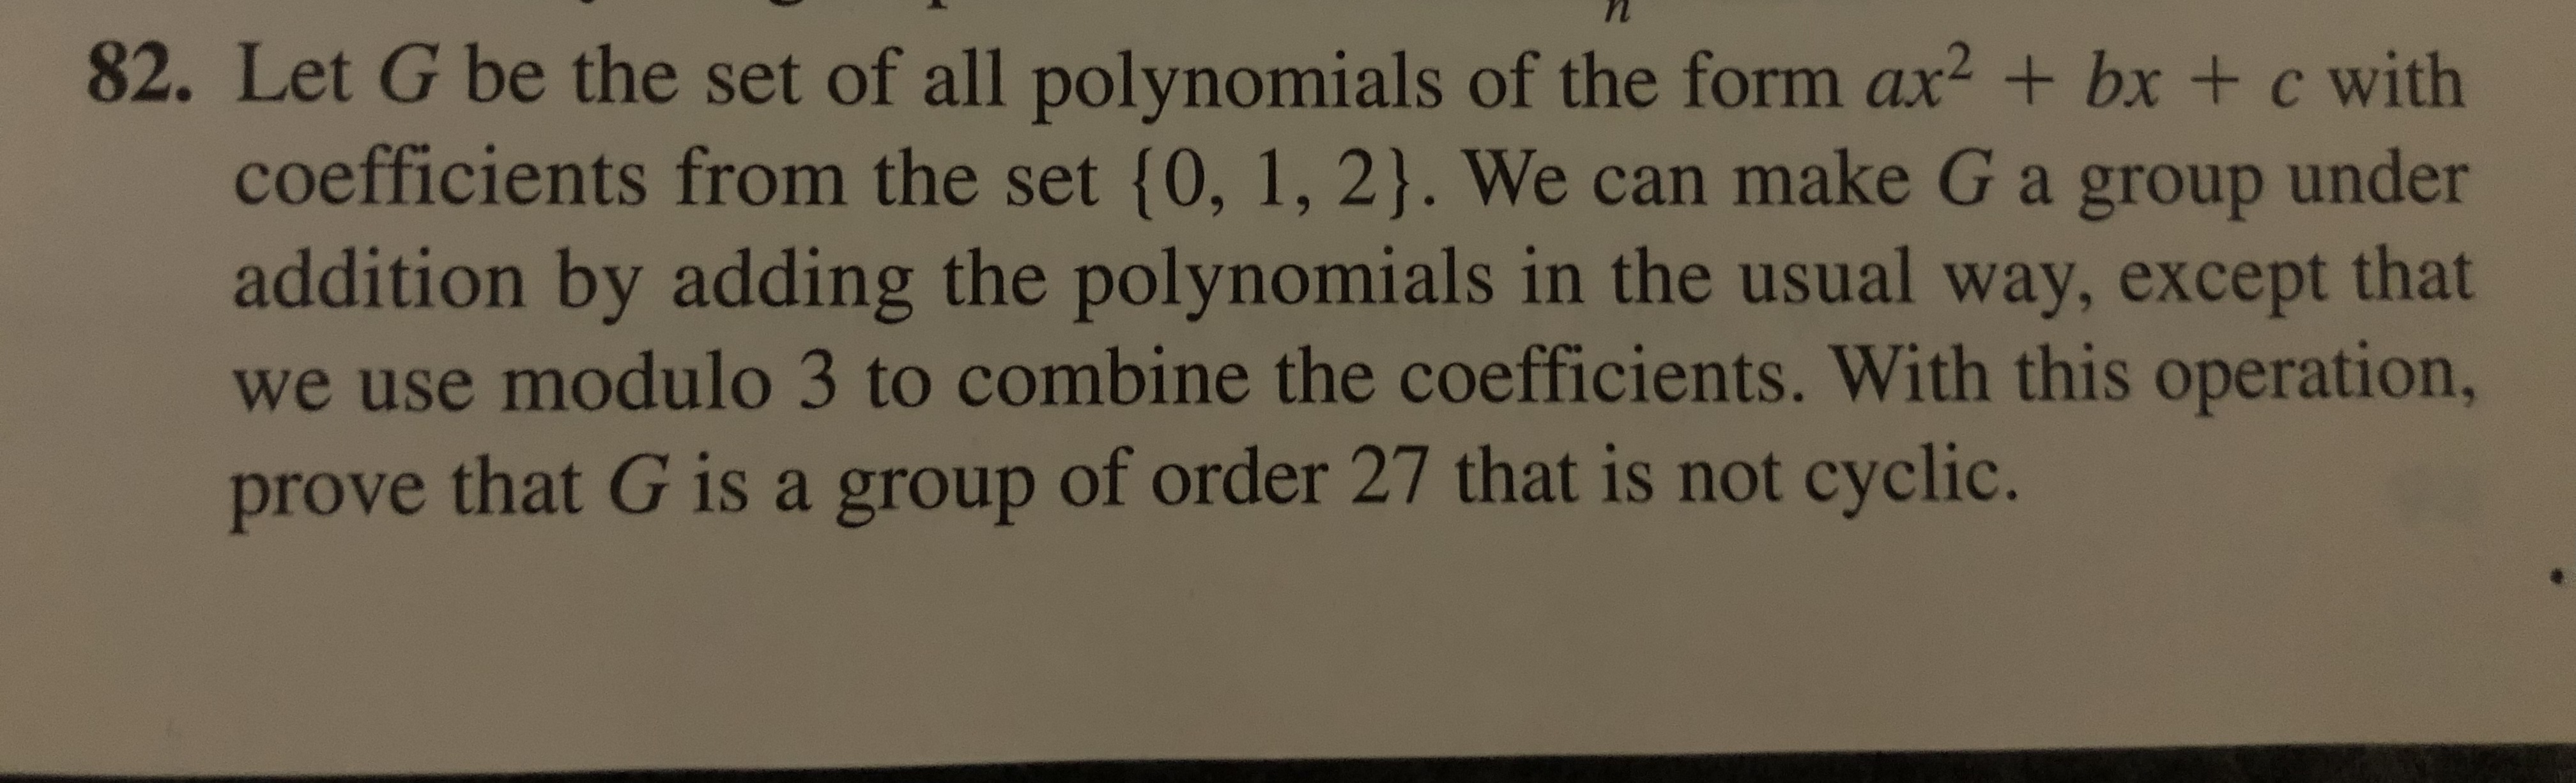 82. Let G be the set of all polynomi als of the form ax2 + bx + c with coefficients from the set {0, 1, 2}. We can make G a group under addition by adding the polynomi als in the usual way, except that we use modulo 3 to combine the coefficients. With this operation, prove that G is a group of order 27 that is not cyclic.